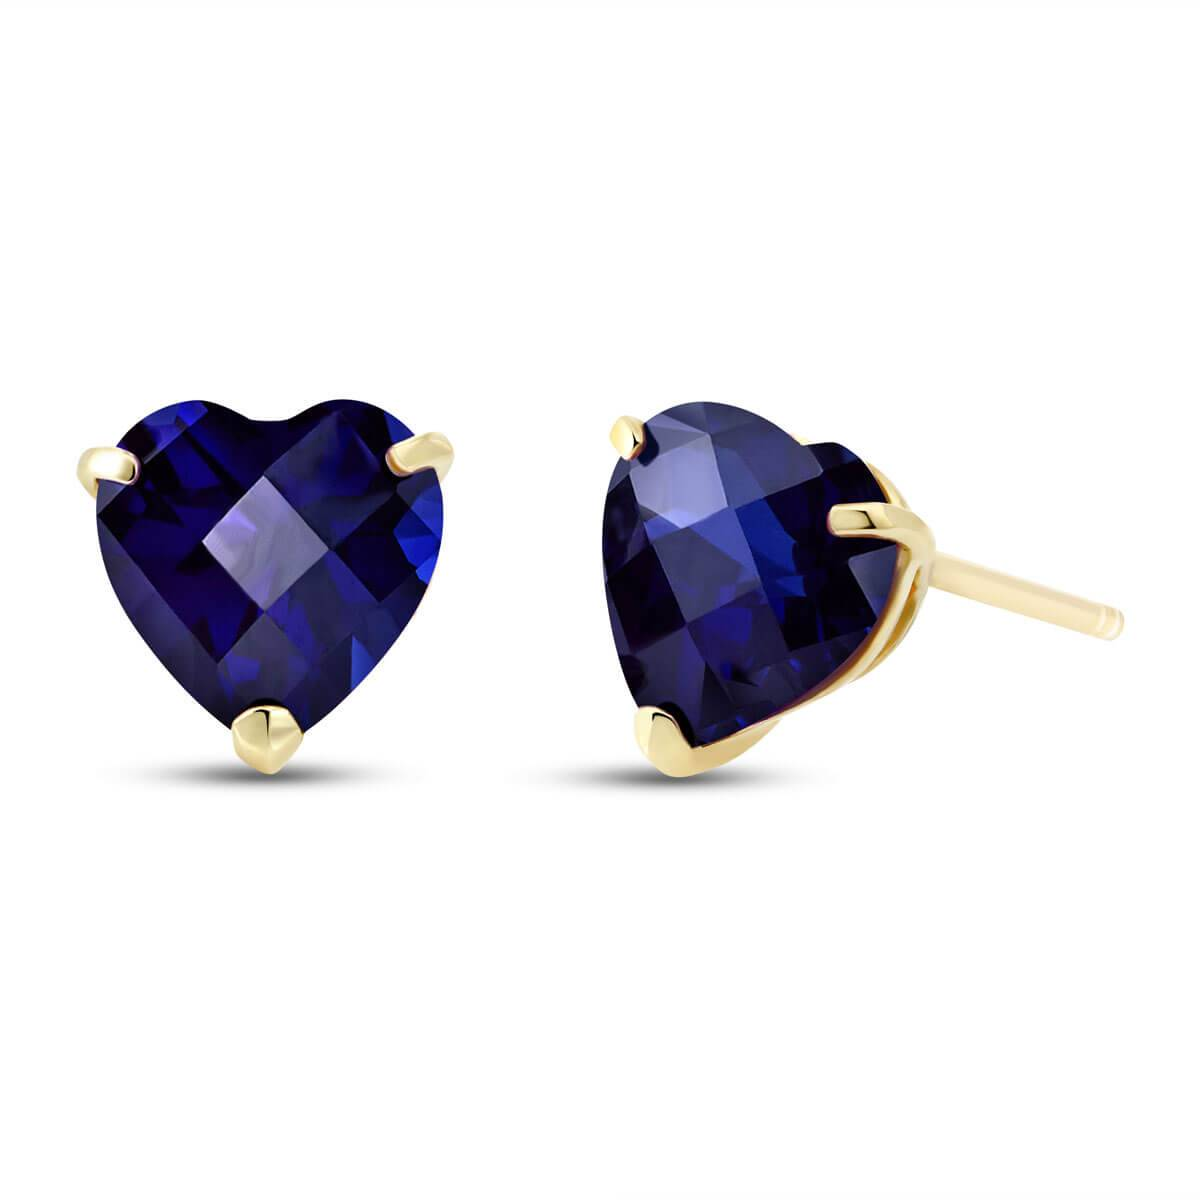 QP Jewellers Sapphire Stud Earrings 3.1 ctw in 9ct Gold